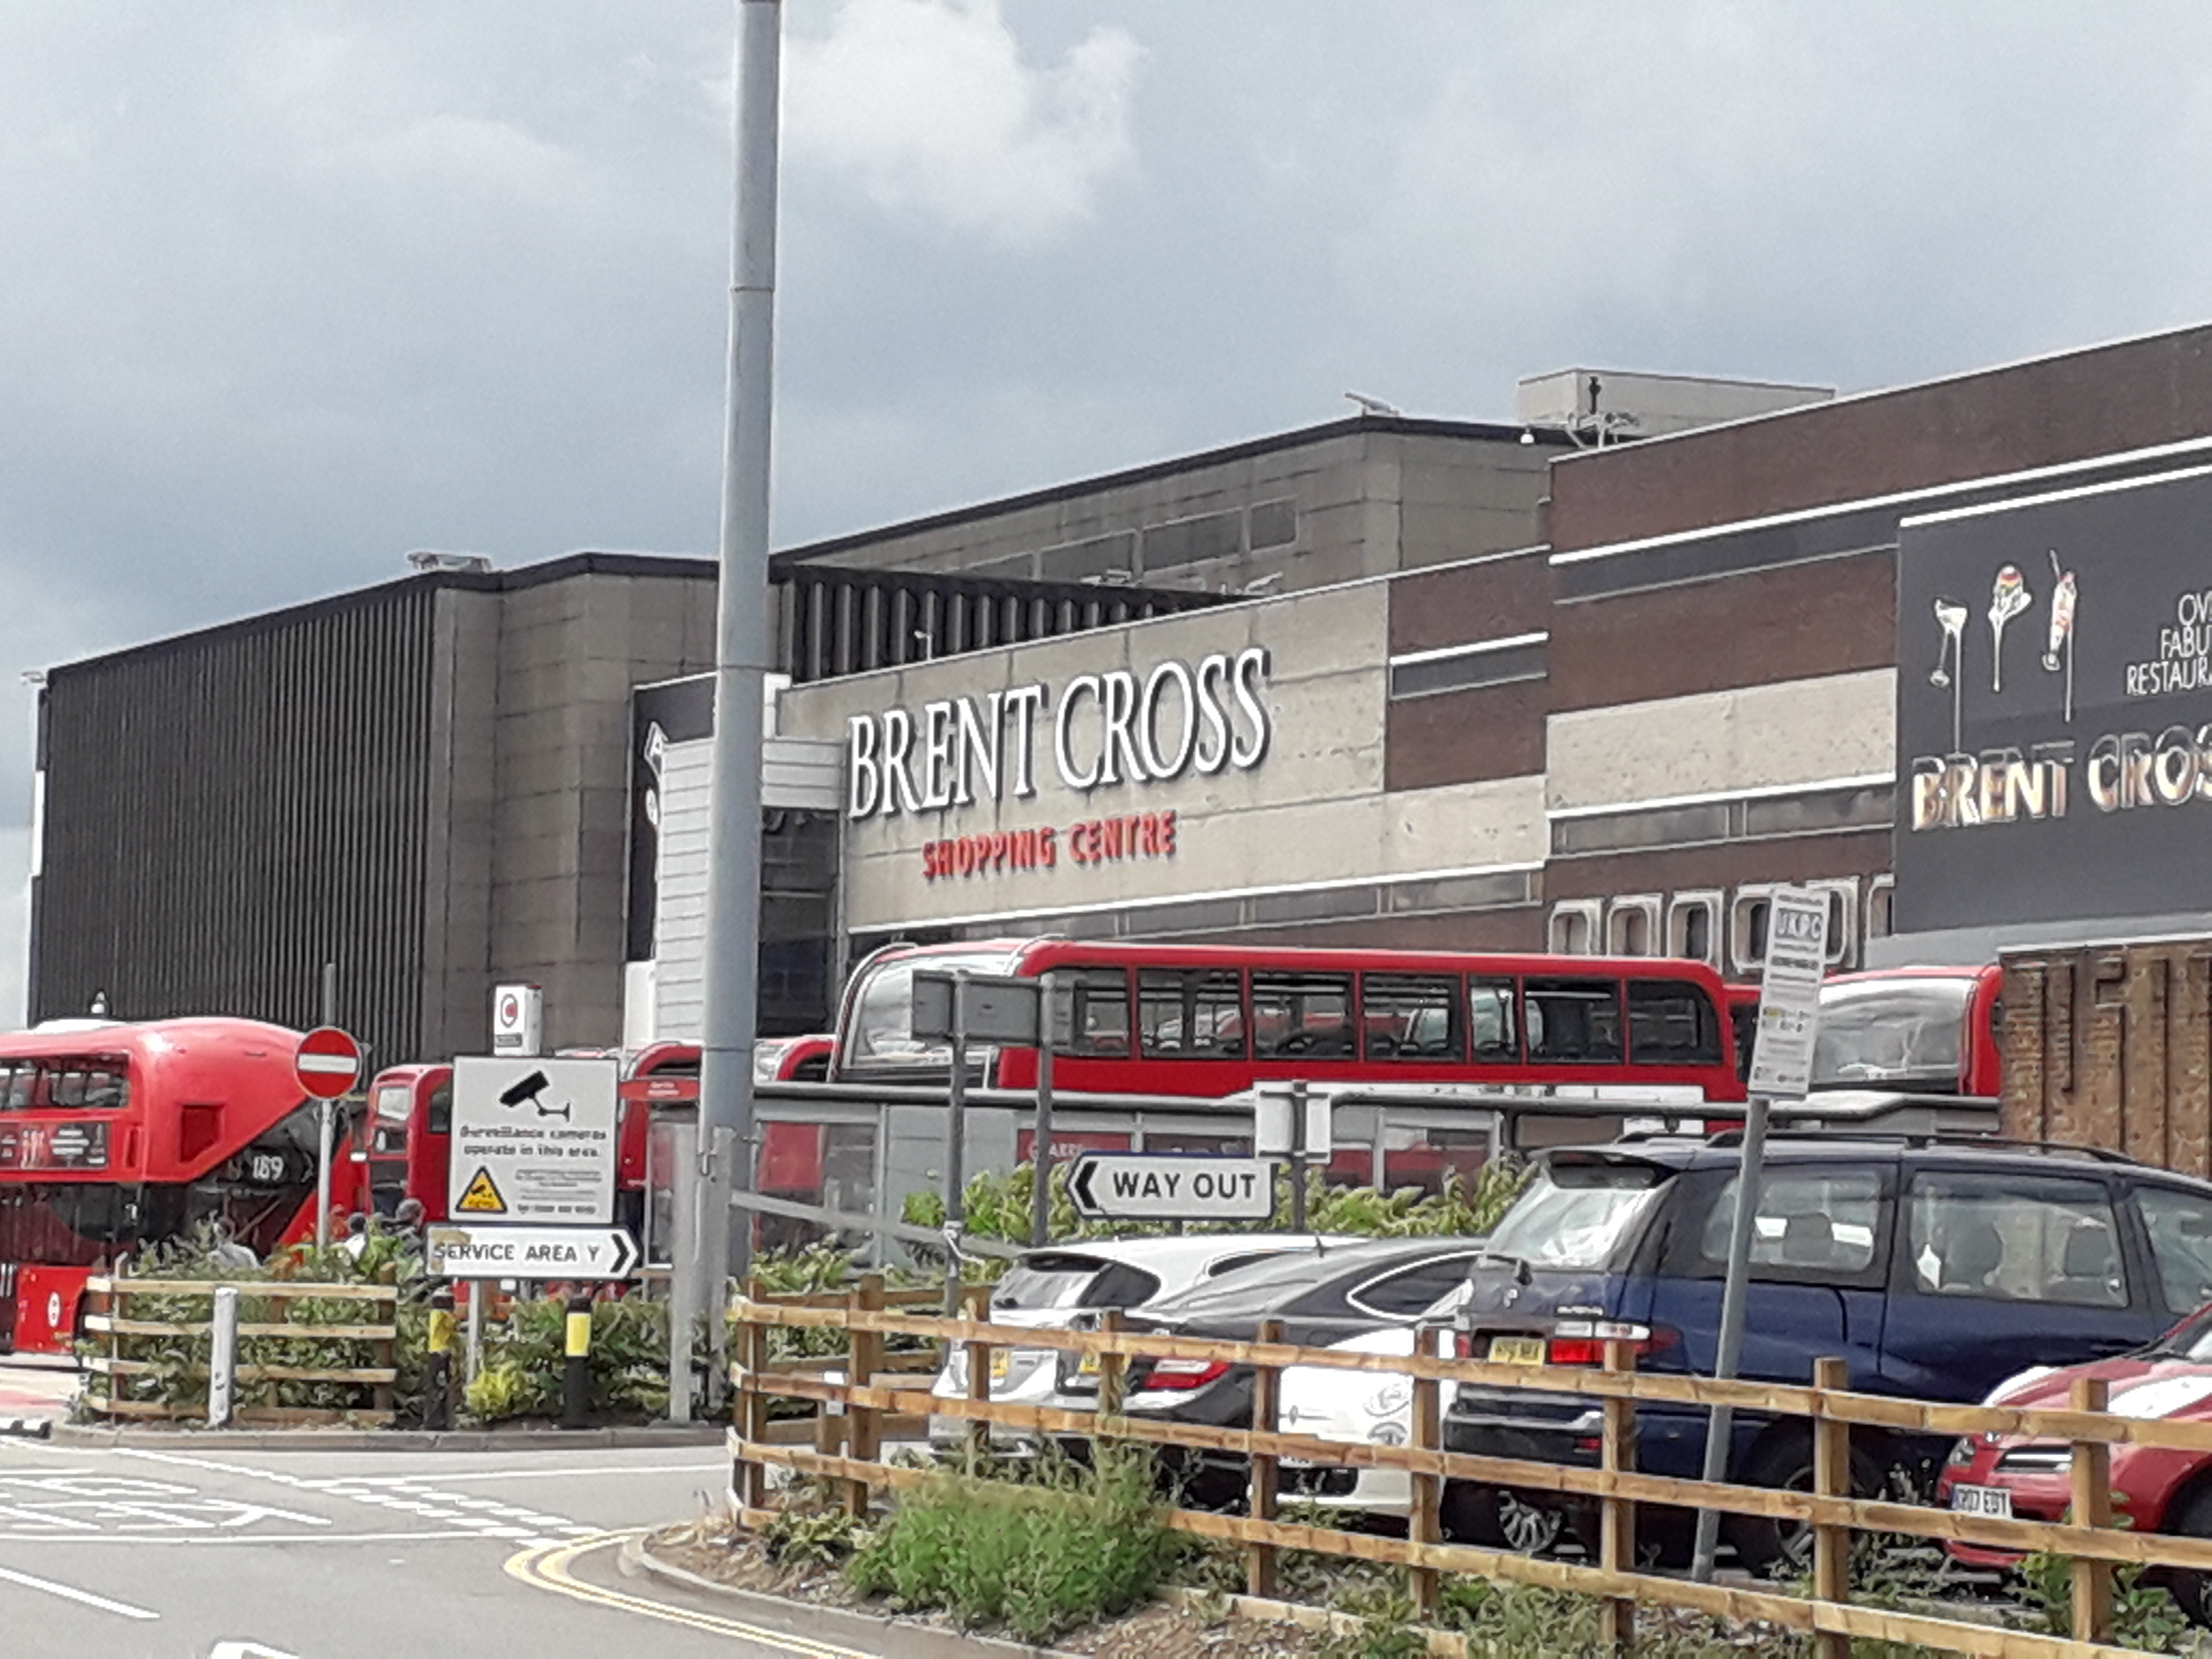 Brent Cross Shopping Centre - Wikipedia